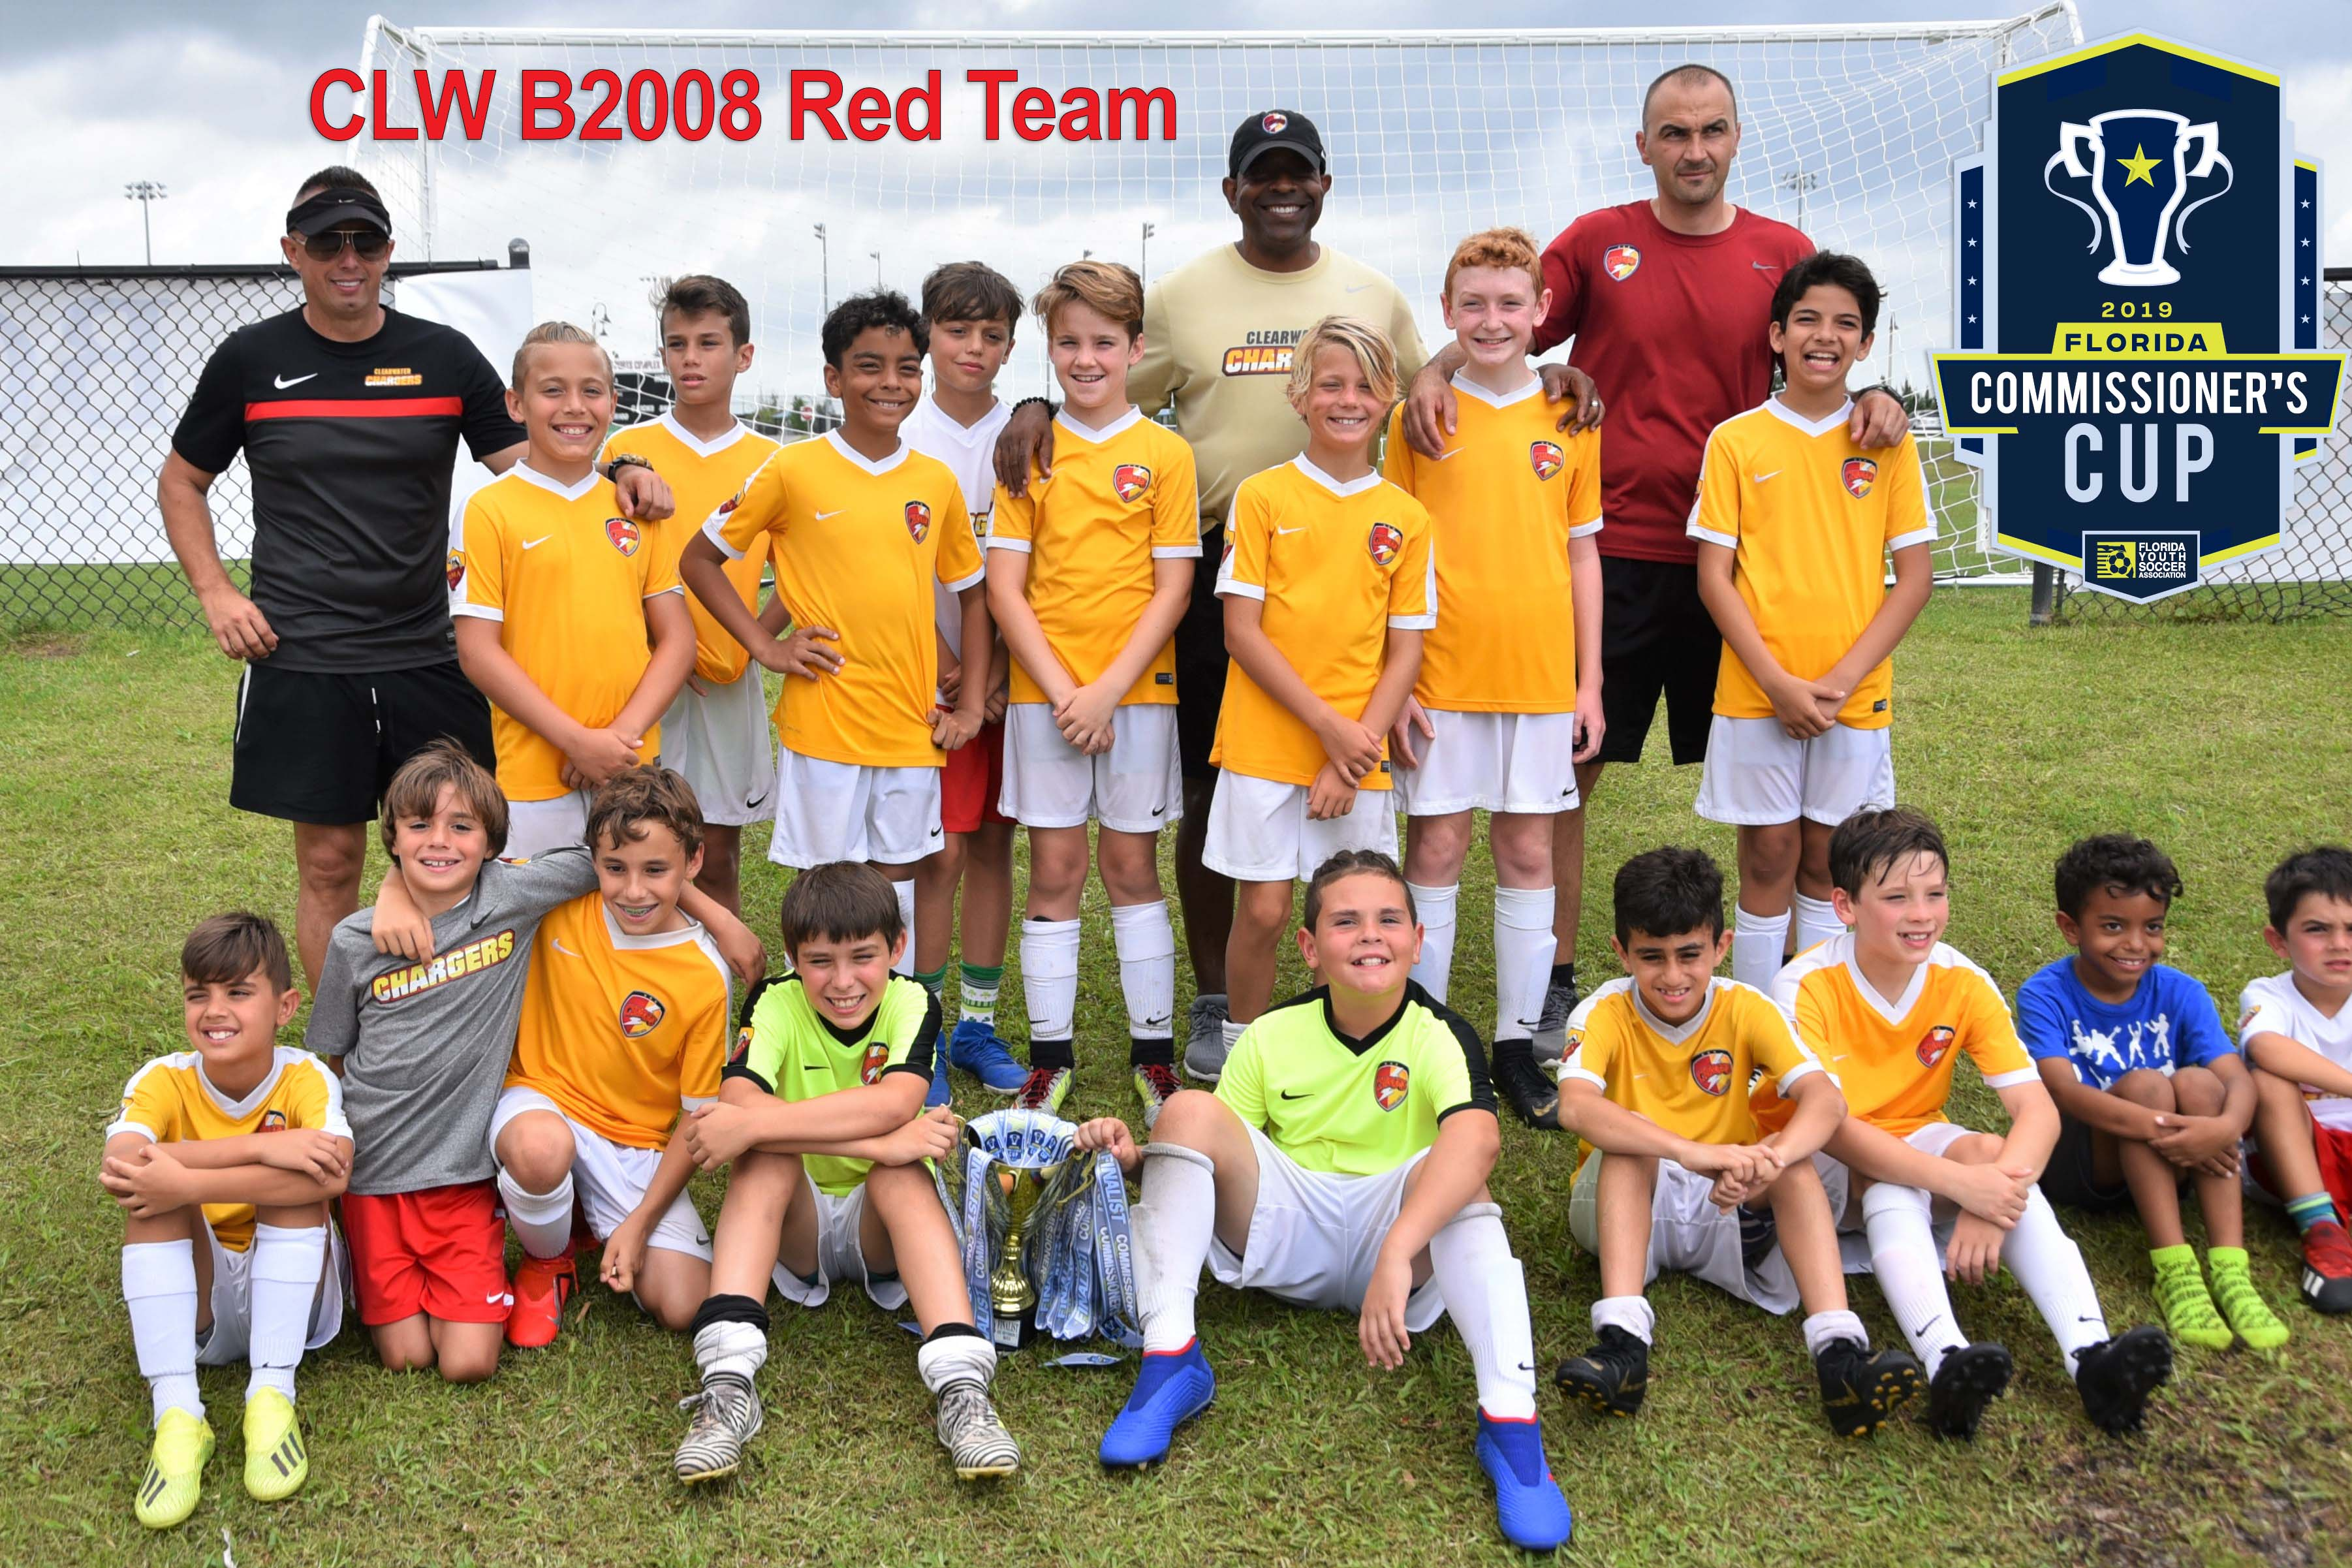 CLW B2008 Red - Commissioner's Cup Successes